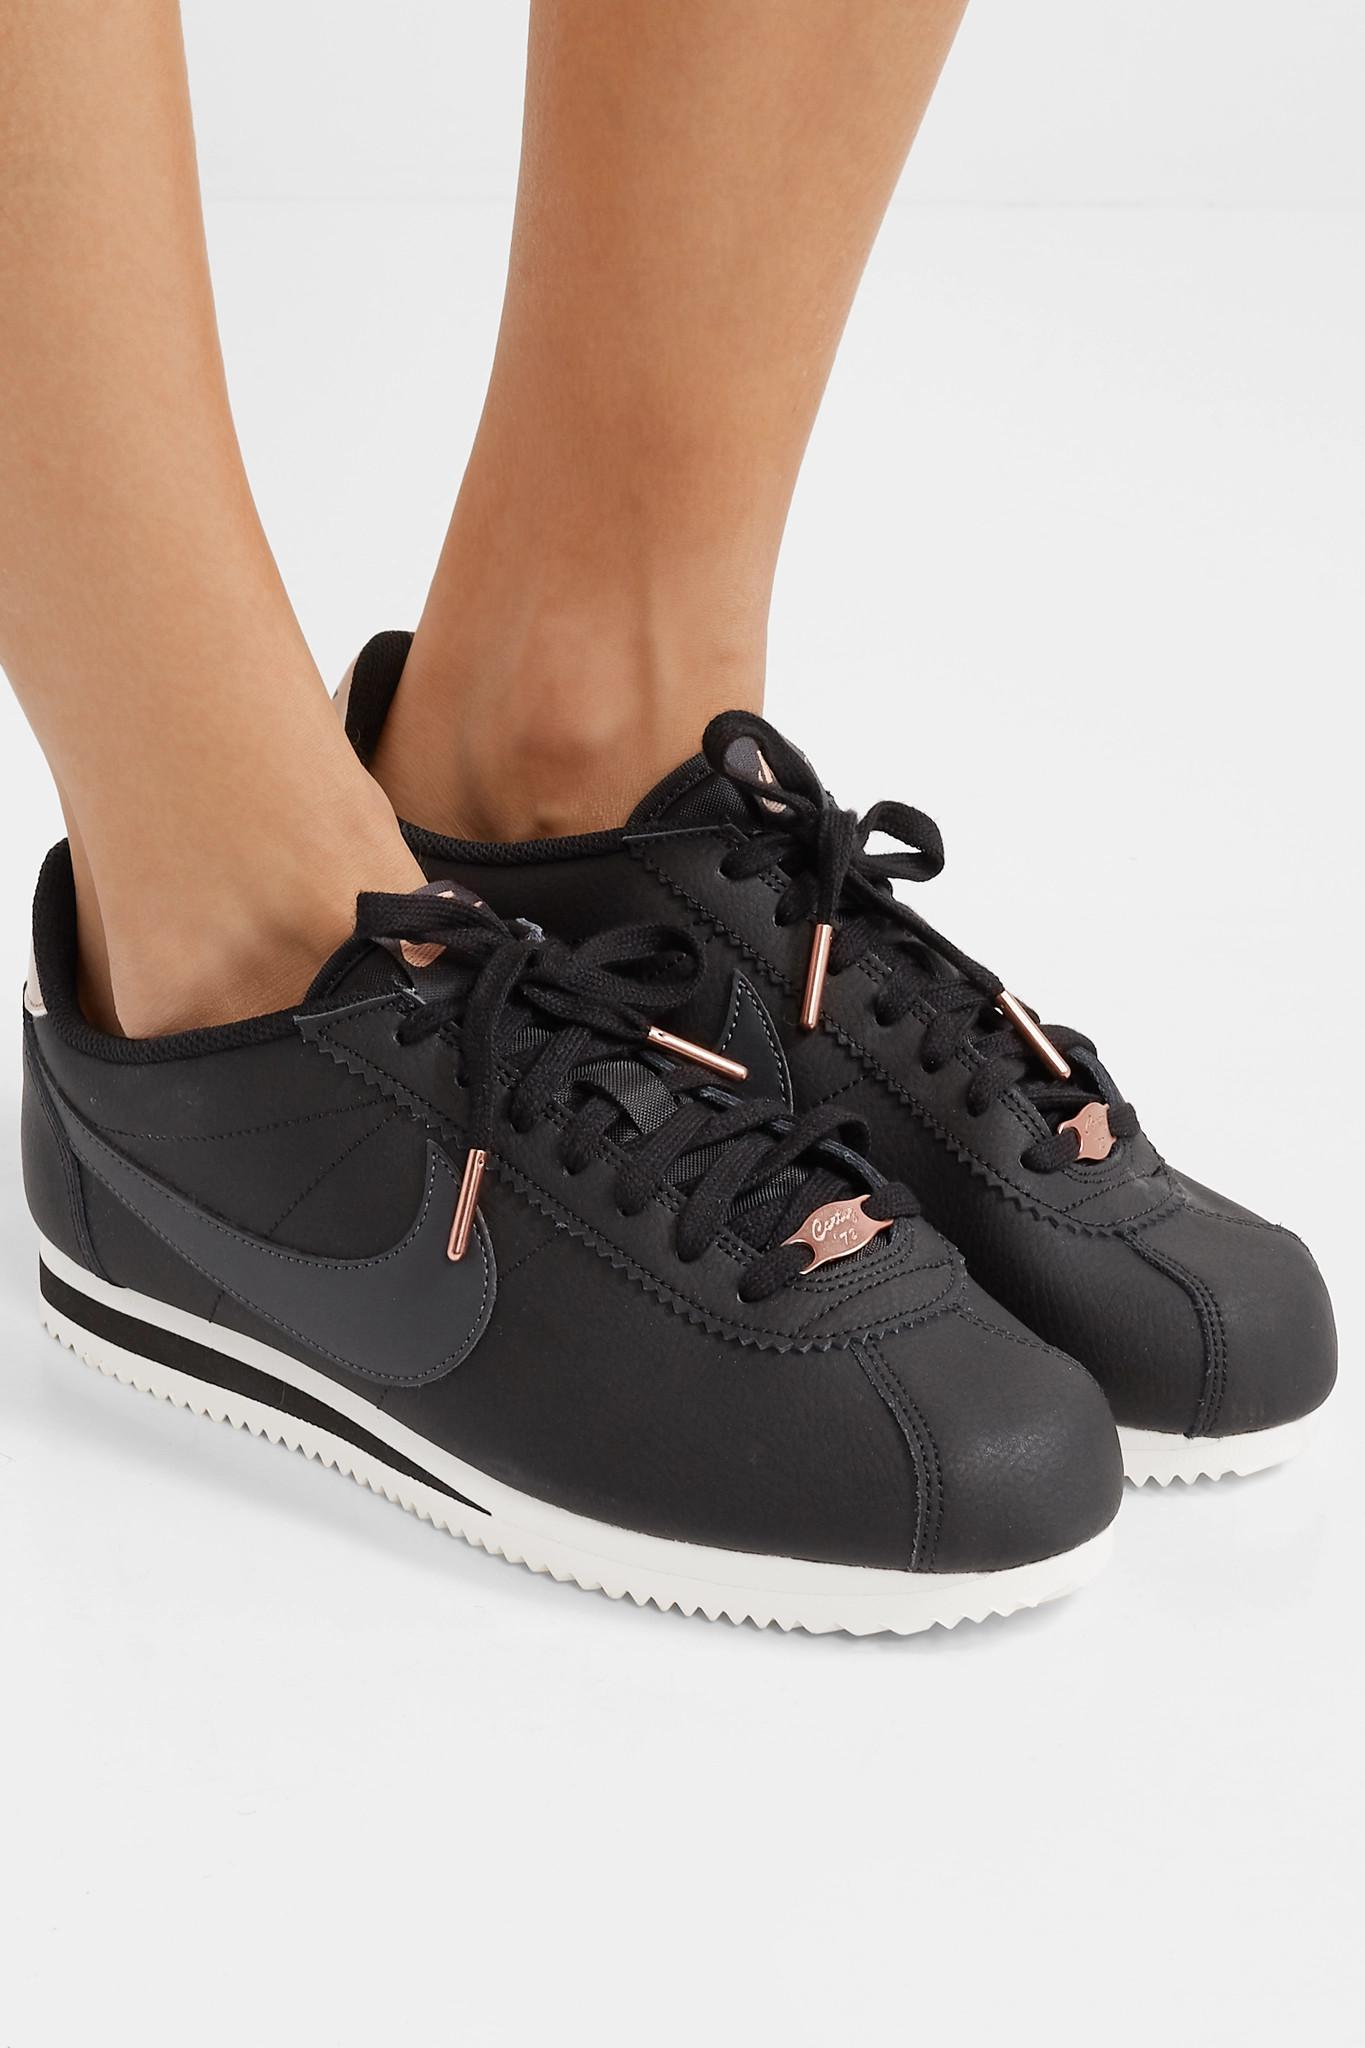 ee2e7118a83 Nike Classic Cortez Textured-leather Sneakers in Black - Lyst